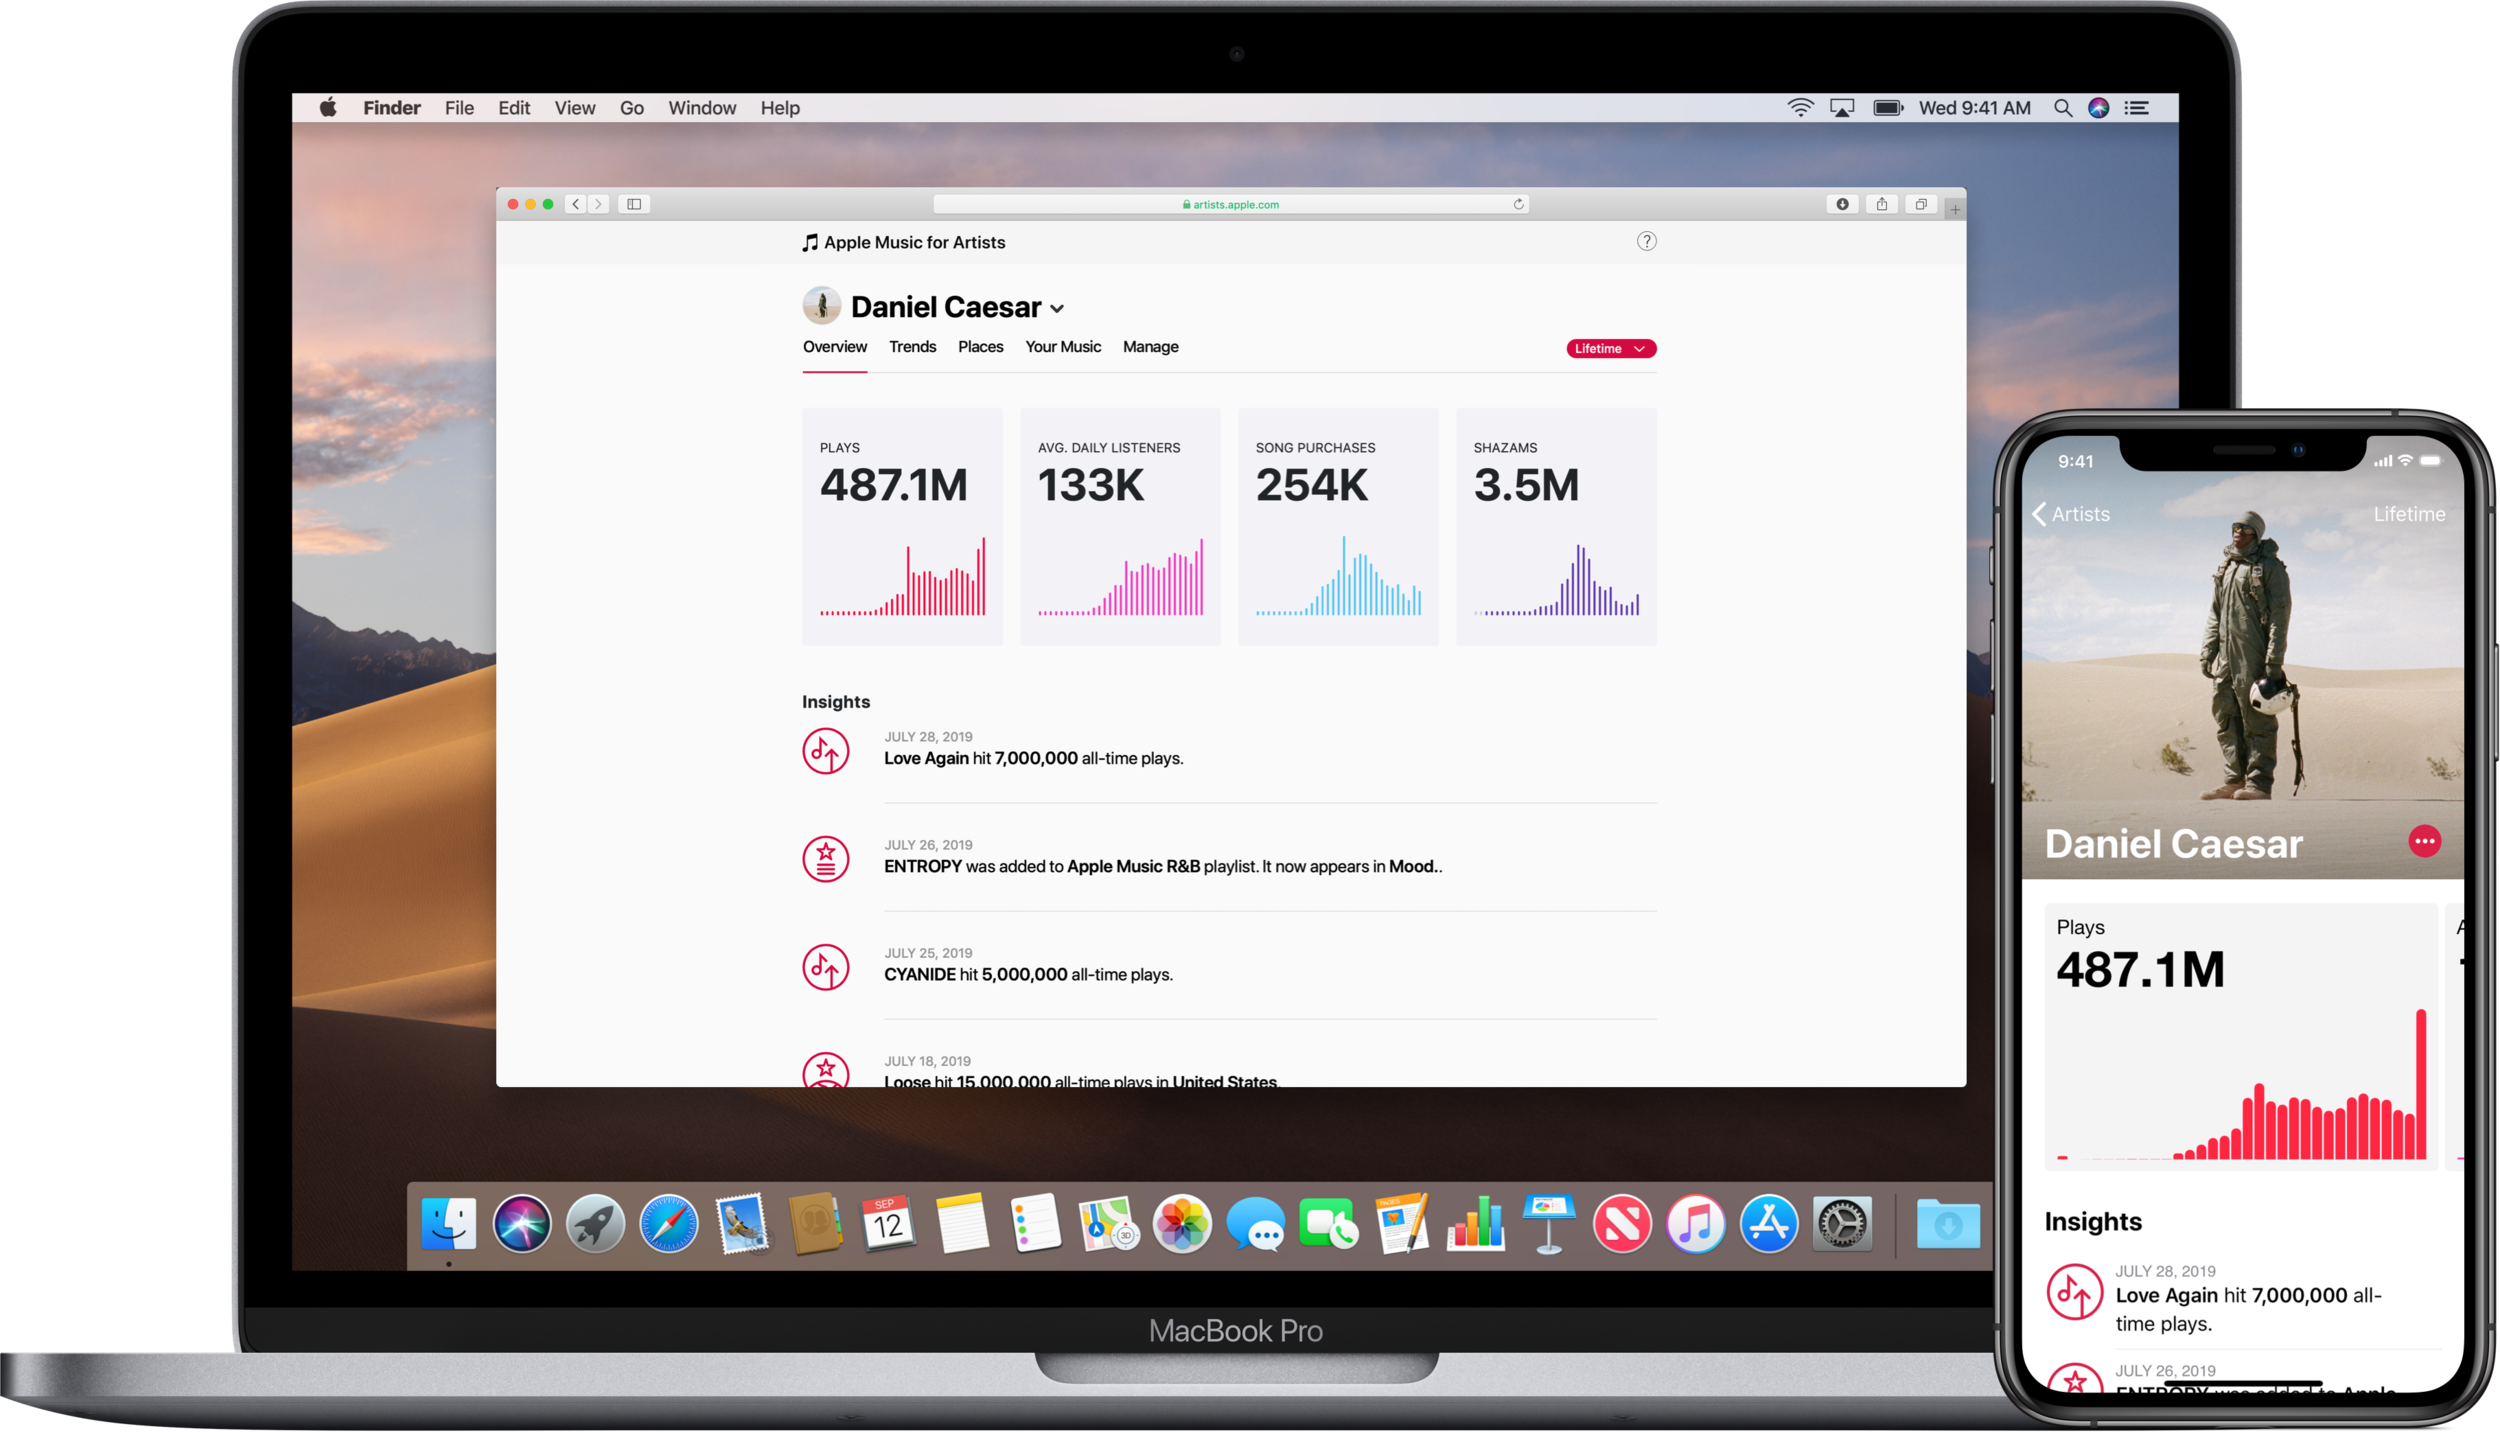 Recently out of beta, Apple Music for Artists offers play statistics and listener demographics.